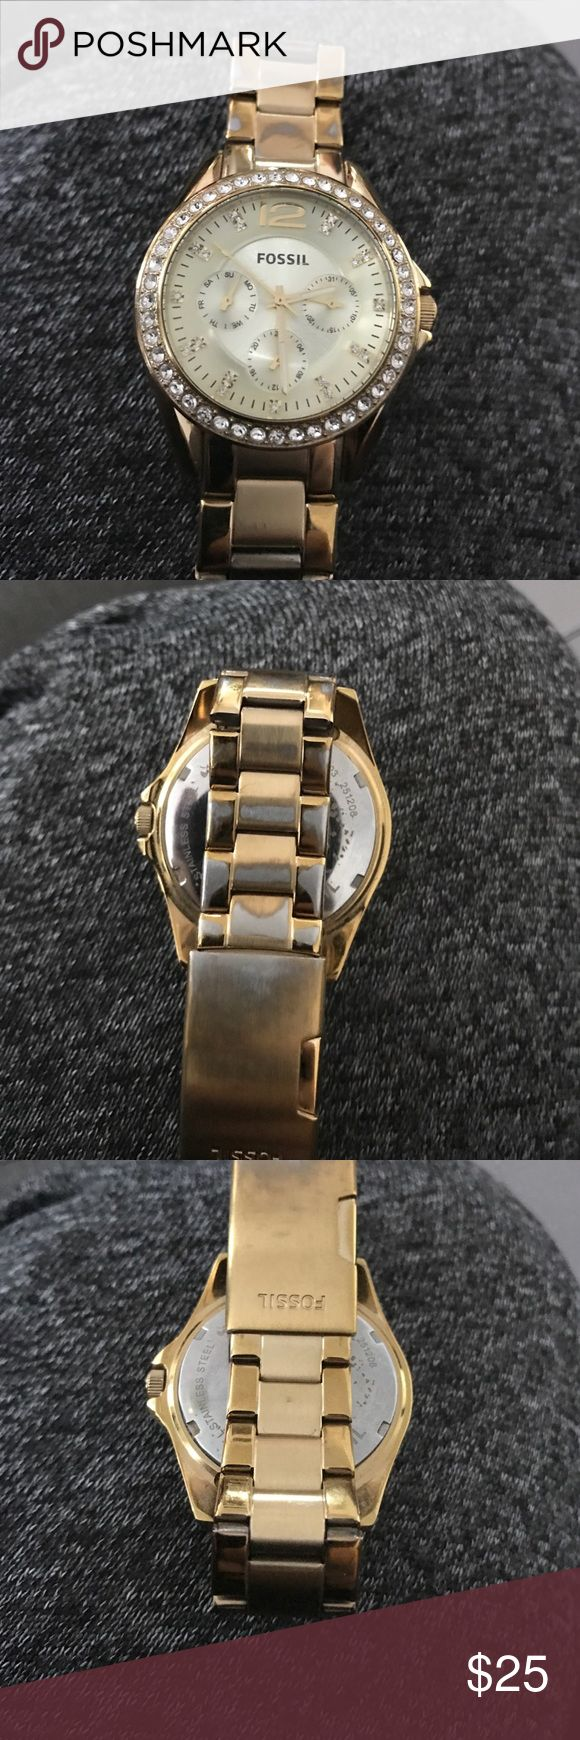 Gold Fossil Watch Gold Fossil Watch. Shows signs of ware. The fact is perfect no scratches or stones missing. Half of the band does show fading of the gold tone. Fossil will replace all links for about $10 and battery for free. Needs battery. Priced to sell. Open to offers. Comes in original box Fossil Accessories Watches